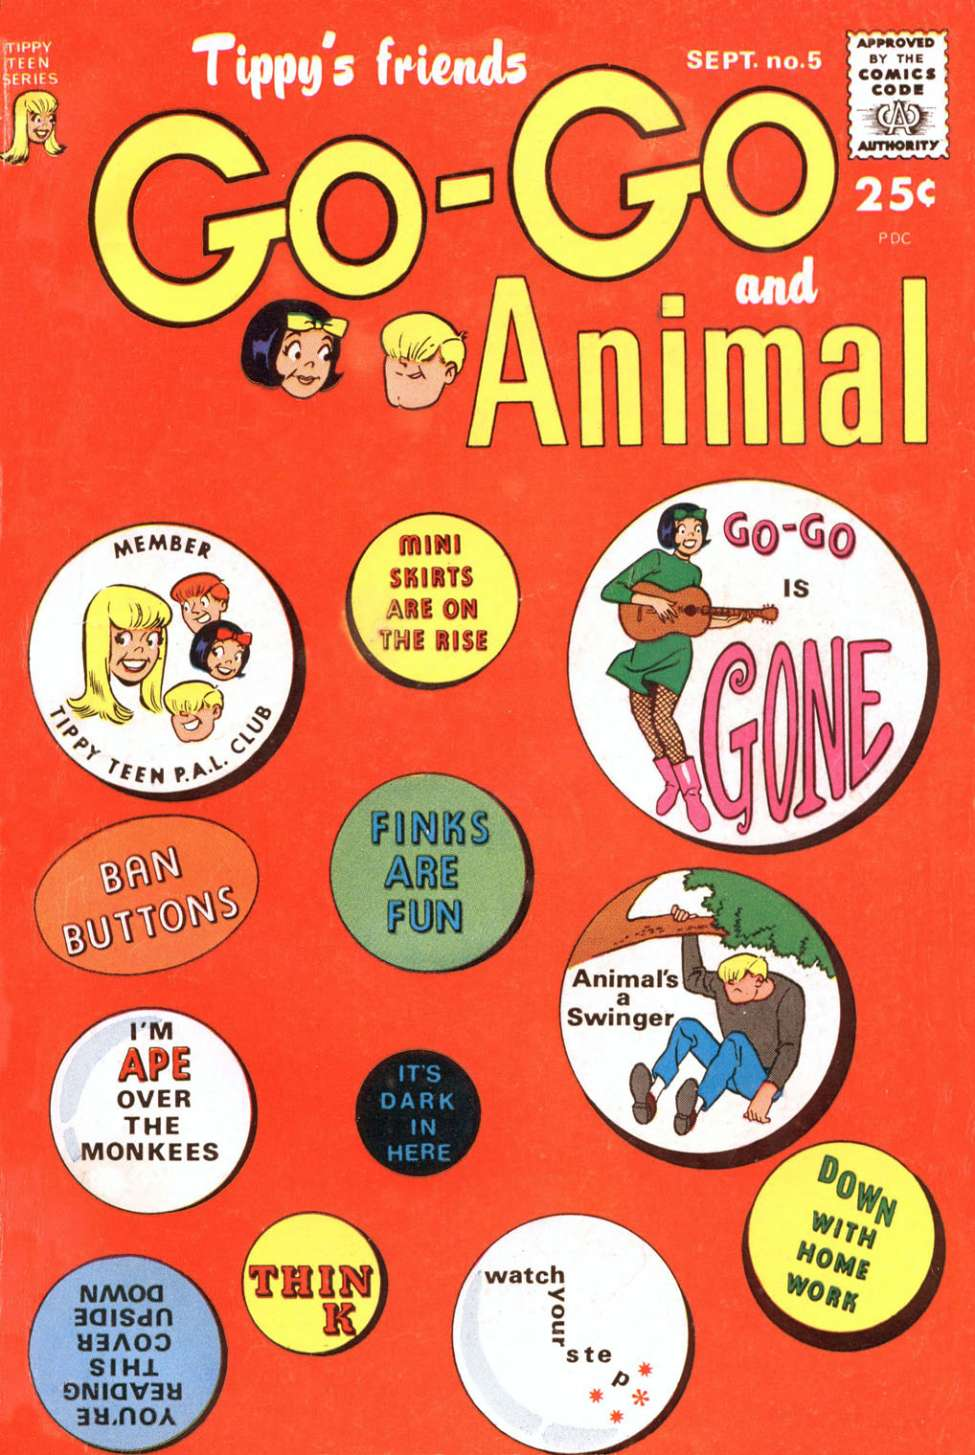 Comic Book Cover For Tippy's Friends Go-Go and Animal #5